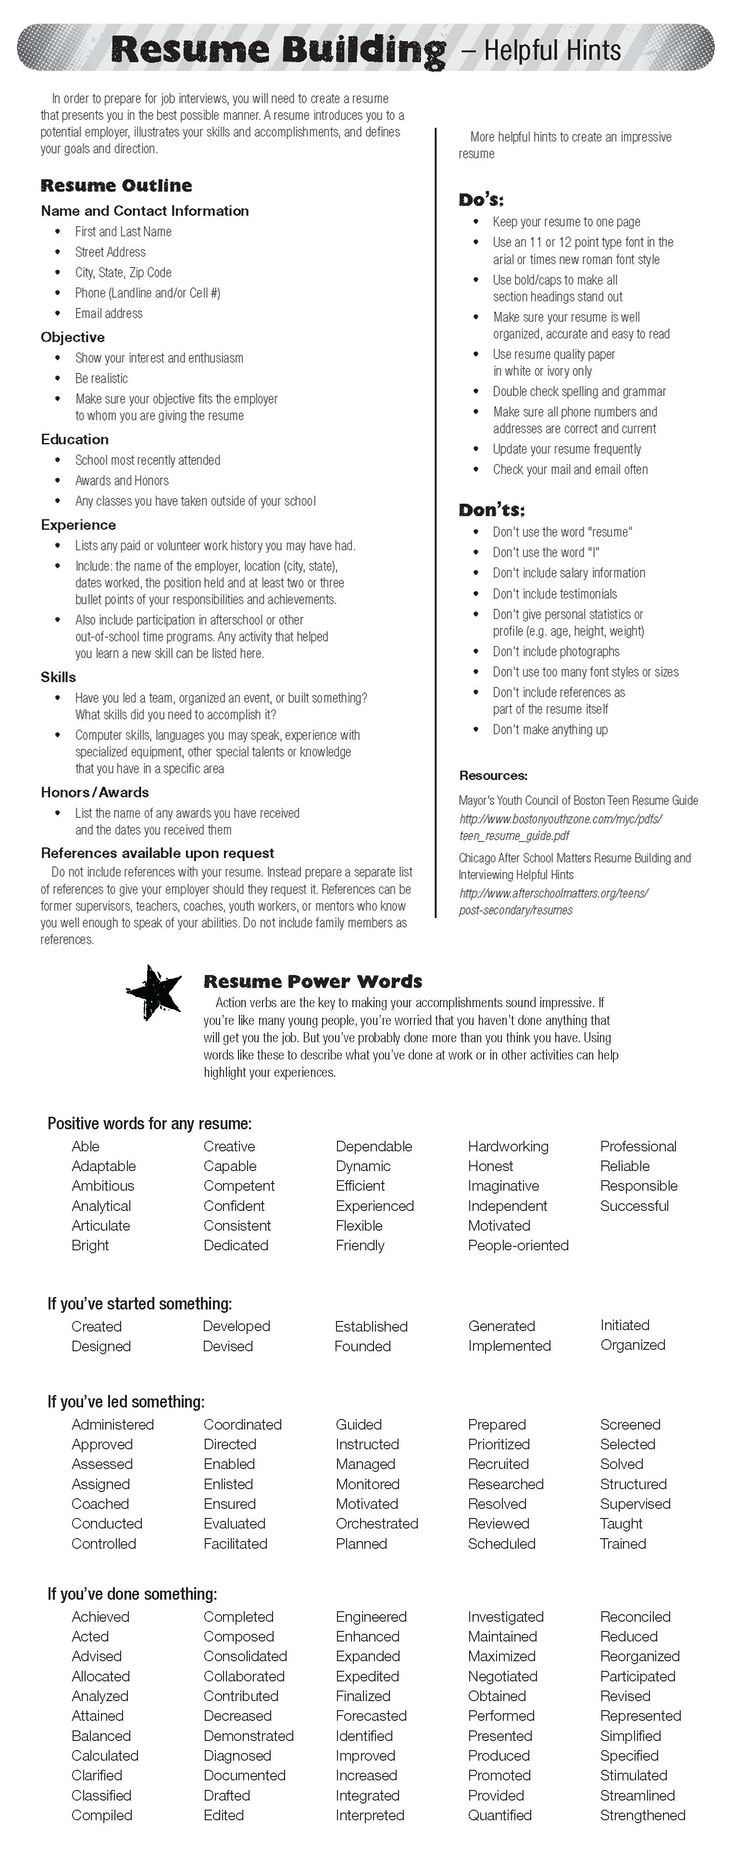 17 best images about resume work tips resume tips check out today s resume building tips veterans employment jobs